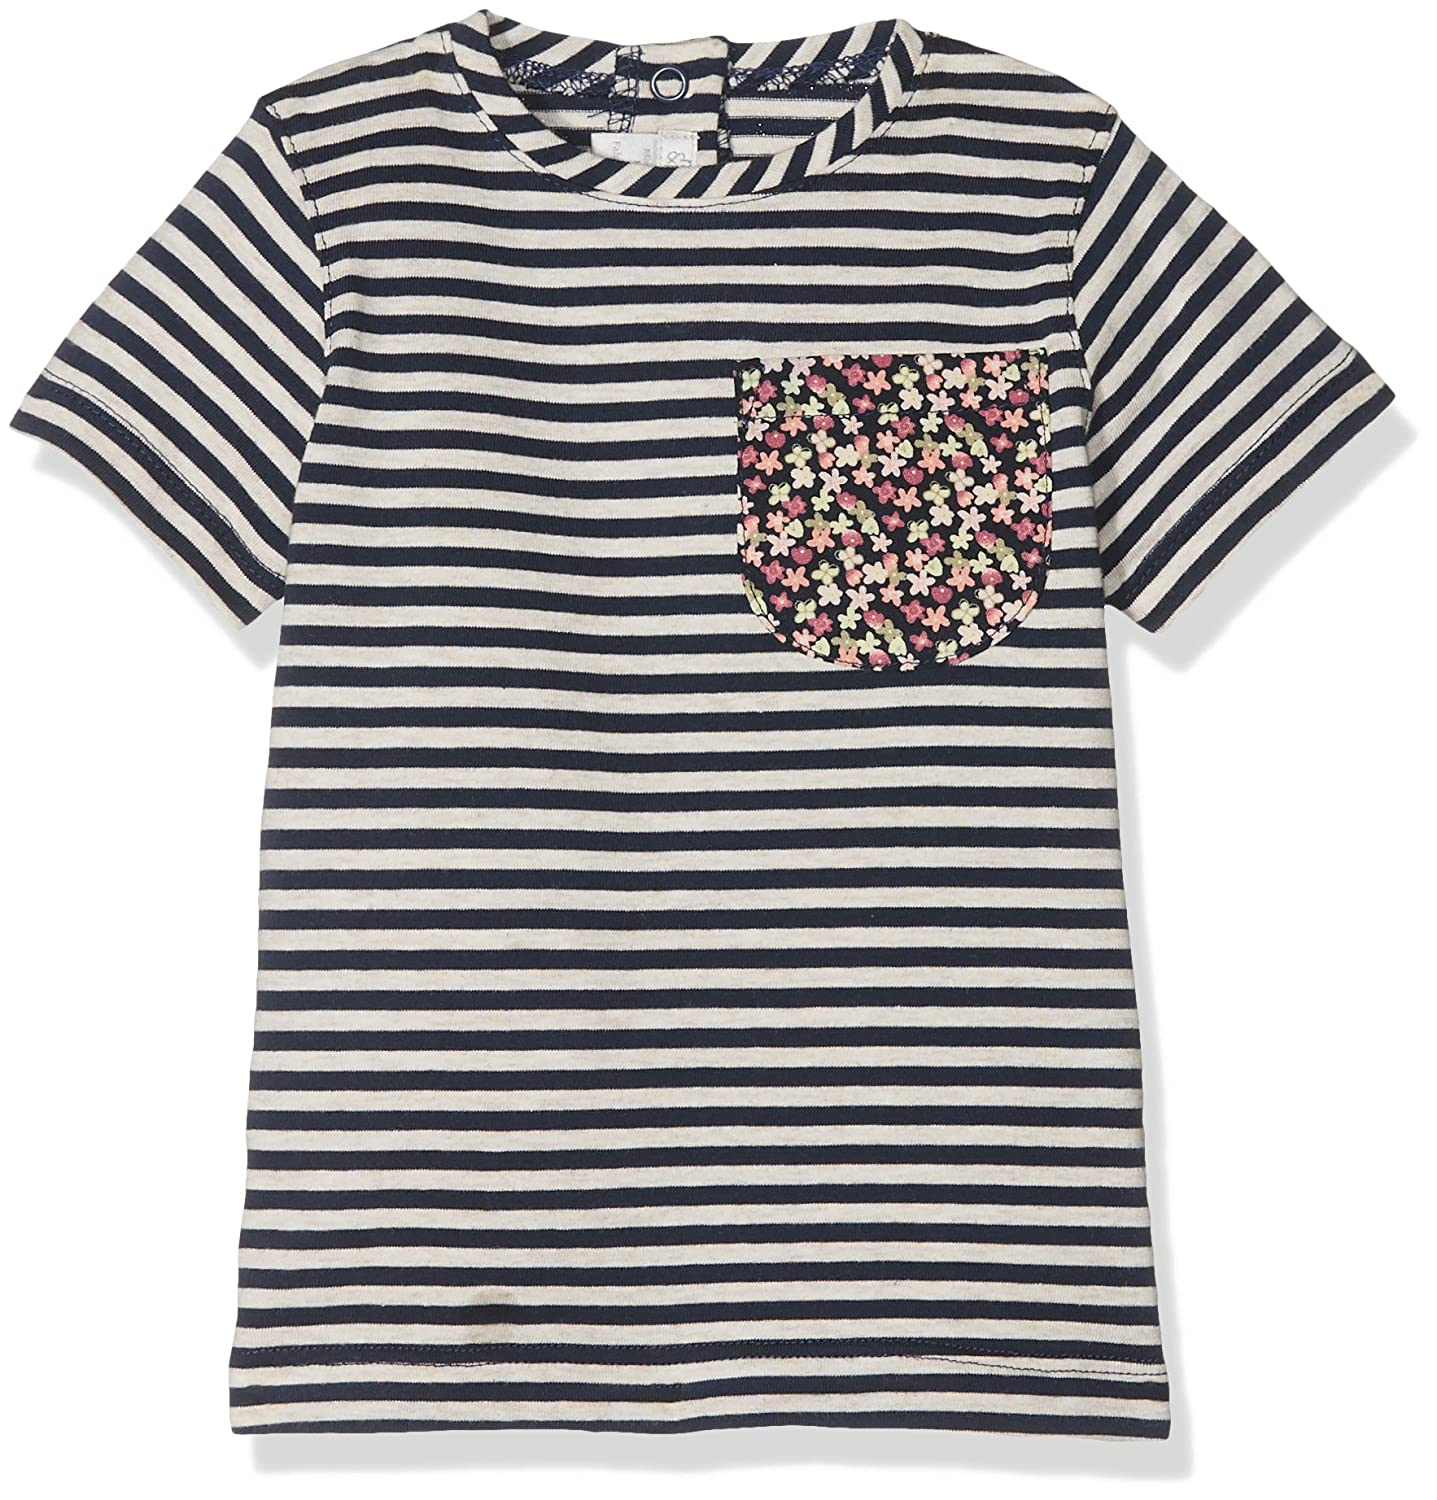 Mamas & Papas Baby Girls' Pocket Detail Tee T-Shirt Mamas and Papas